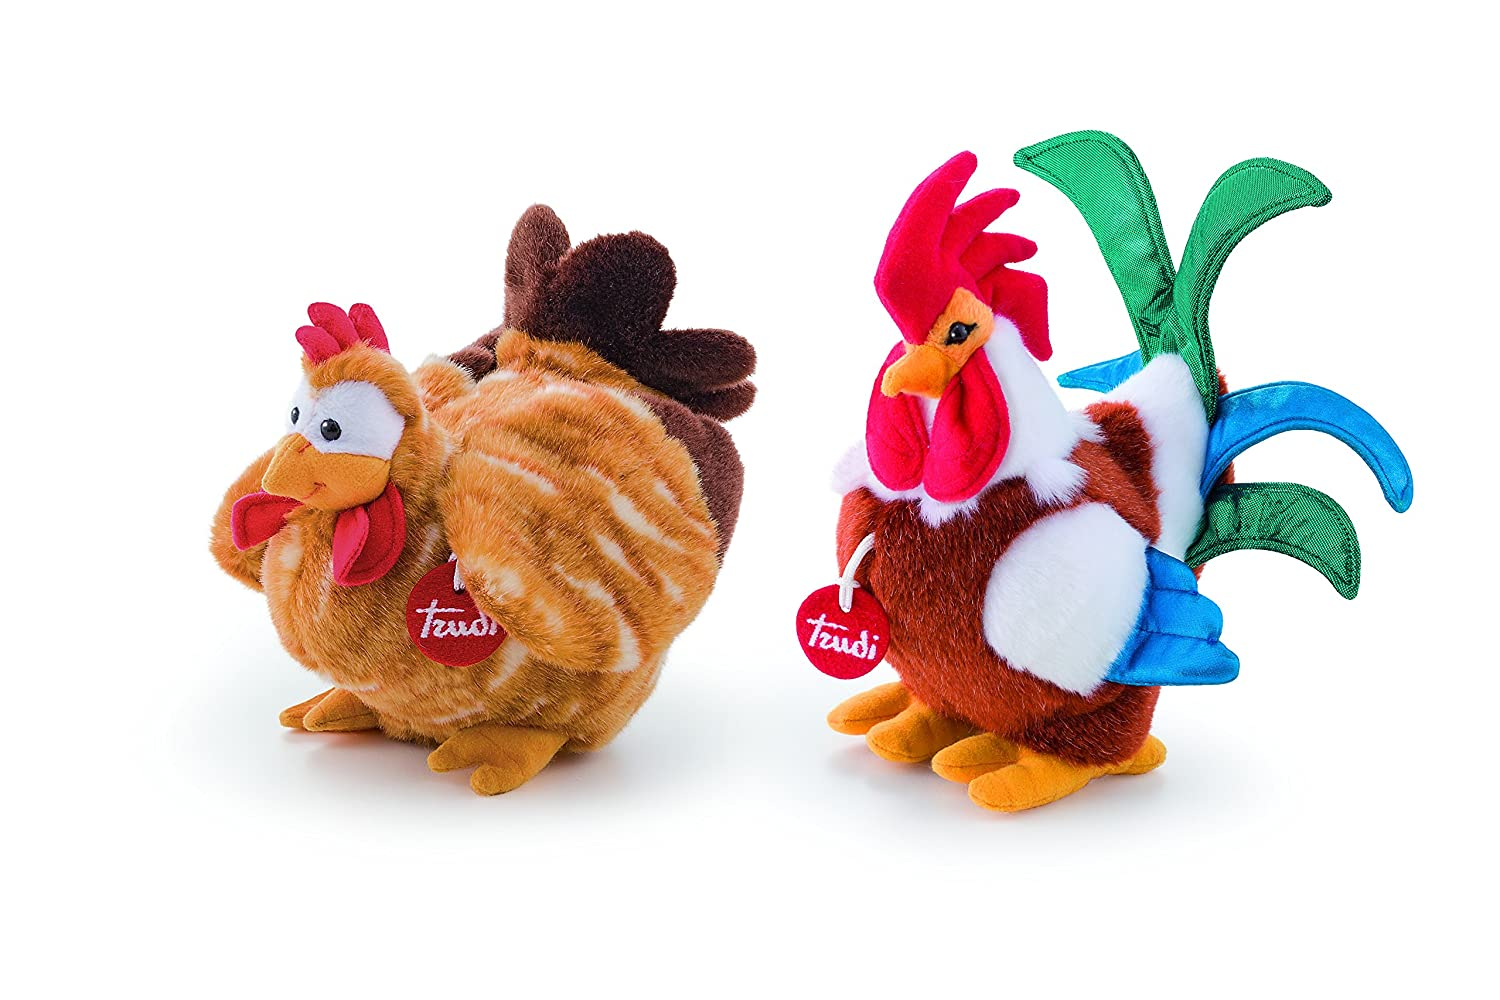 Amazon.com: Trudi 20123 Peluche Poule Florenza Hen Soft Fluffy Stuffed Animal Plush Toy: Toys & Games